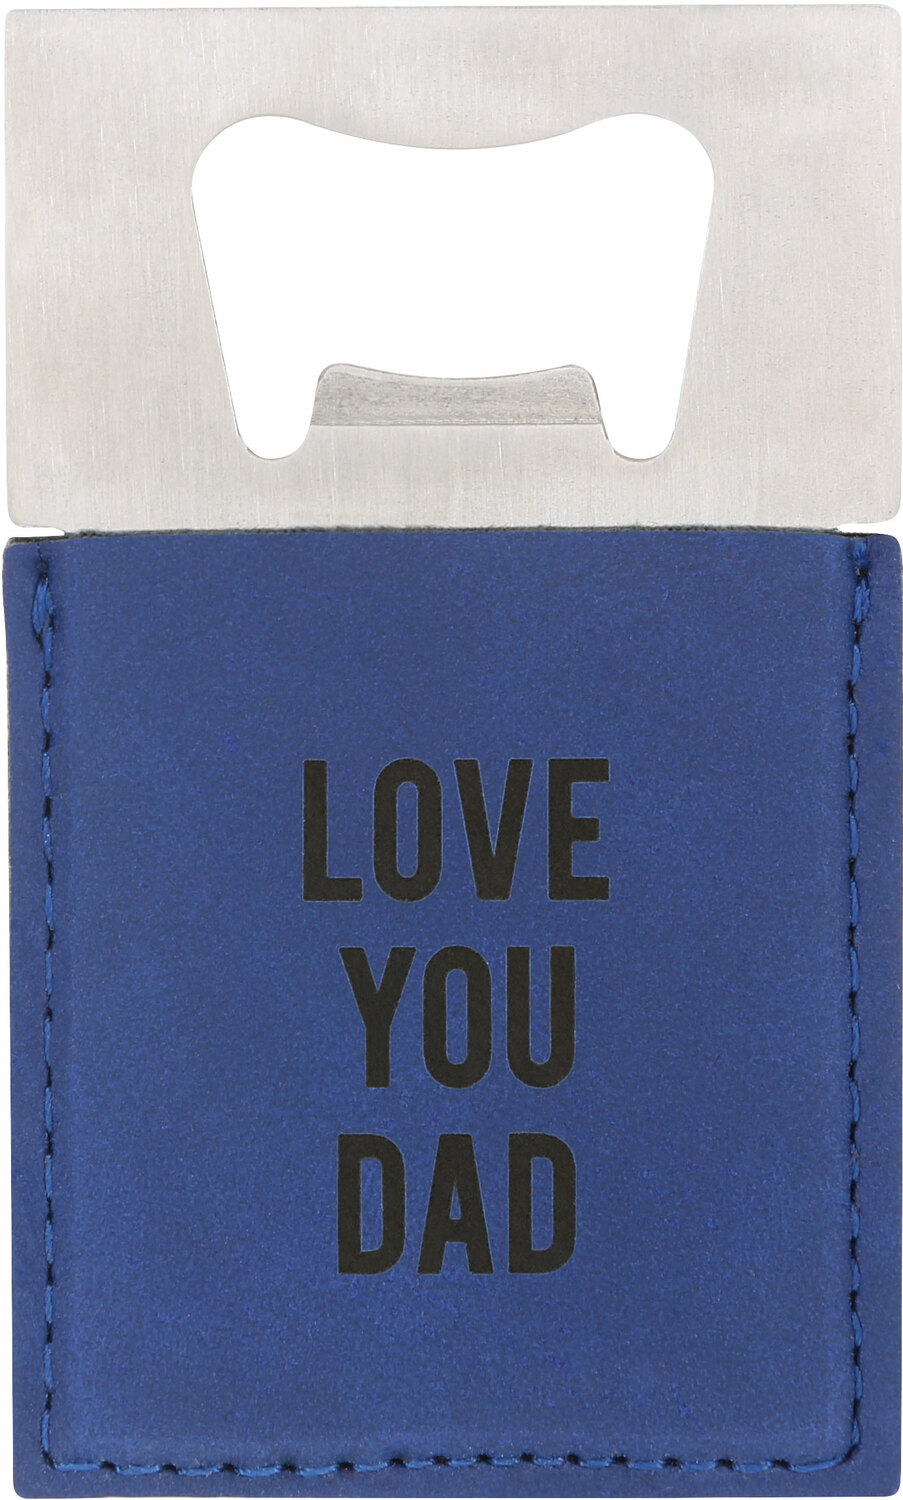 "Dad by Man Made - Dad - 2"" x 3.5"" Bottle Opener Magnet"